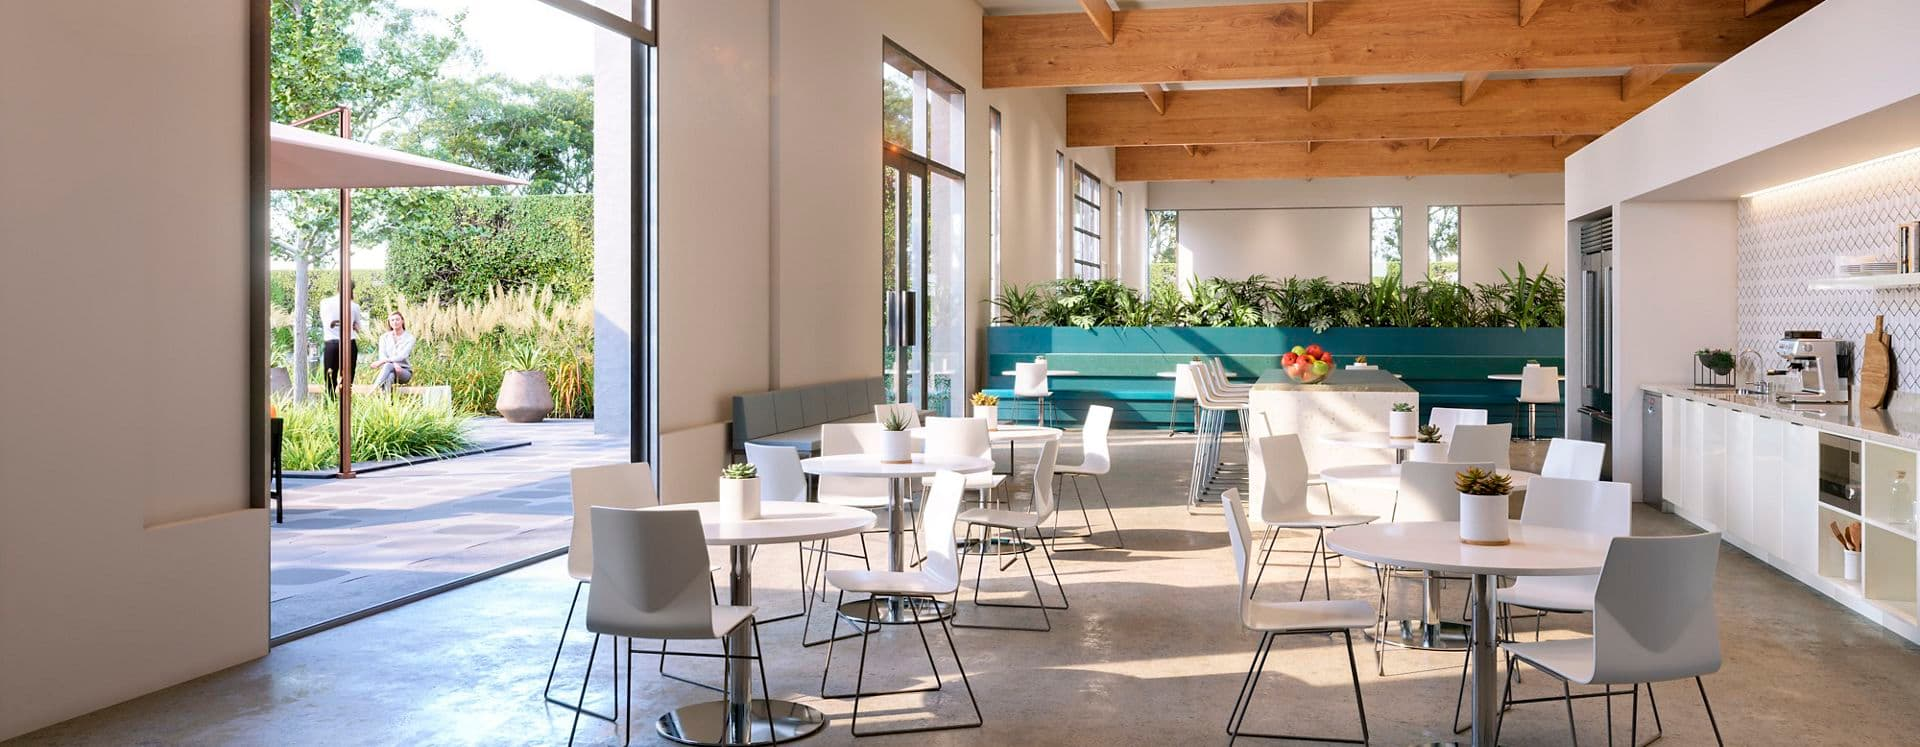 Break Room for 305 Mathilda located in Silicon Valley, CA